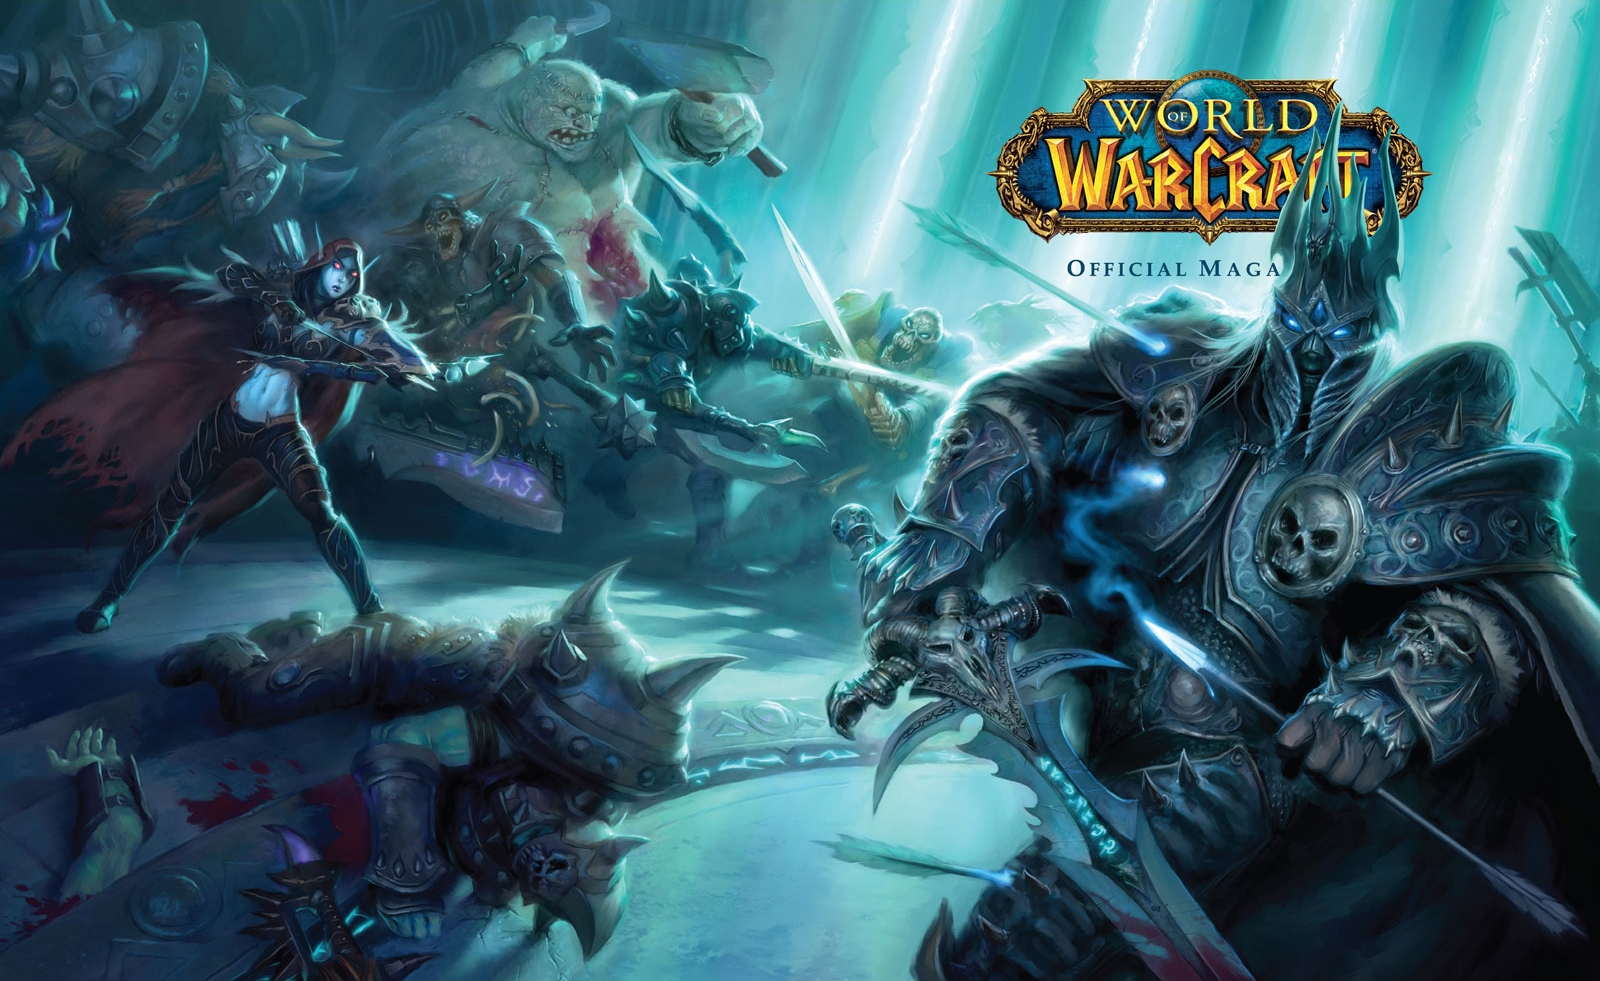 Novedades del Word of warcraft